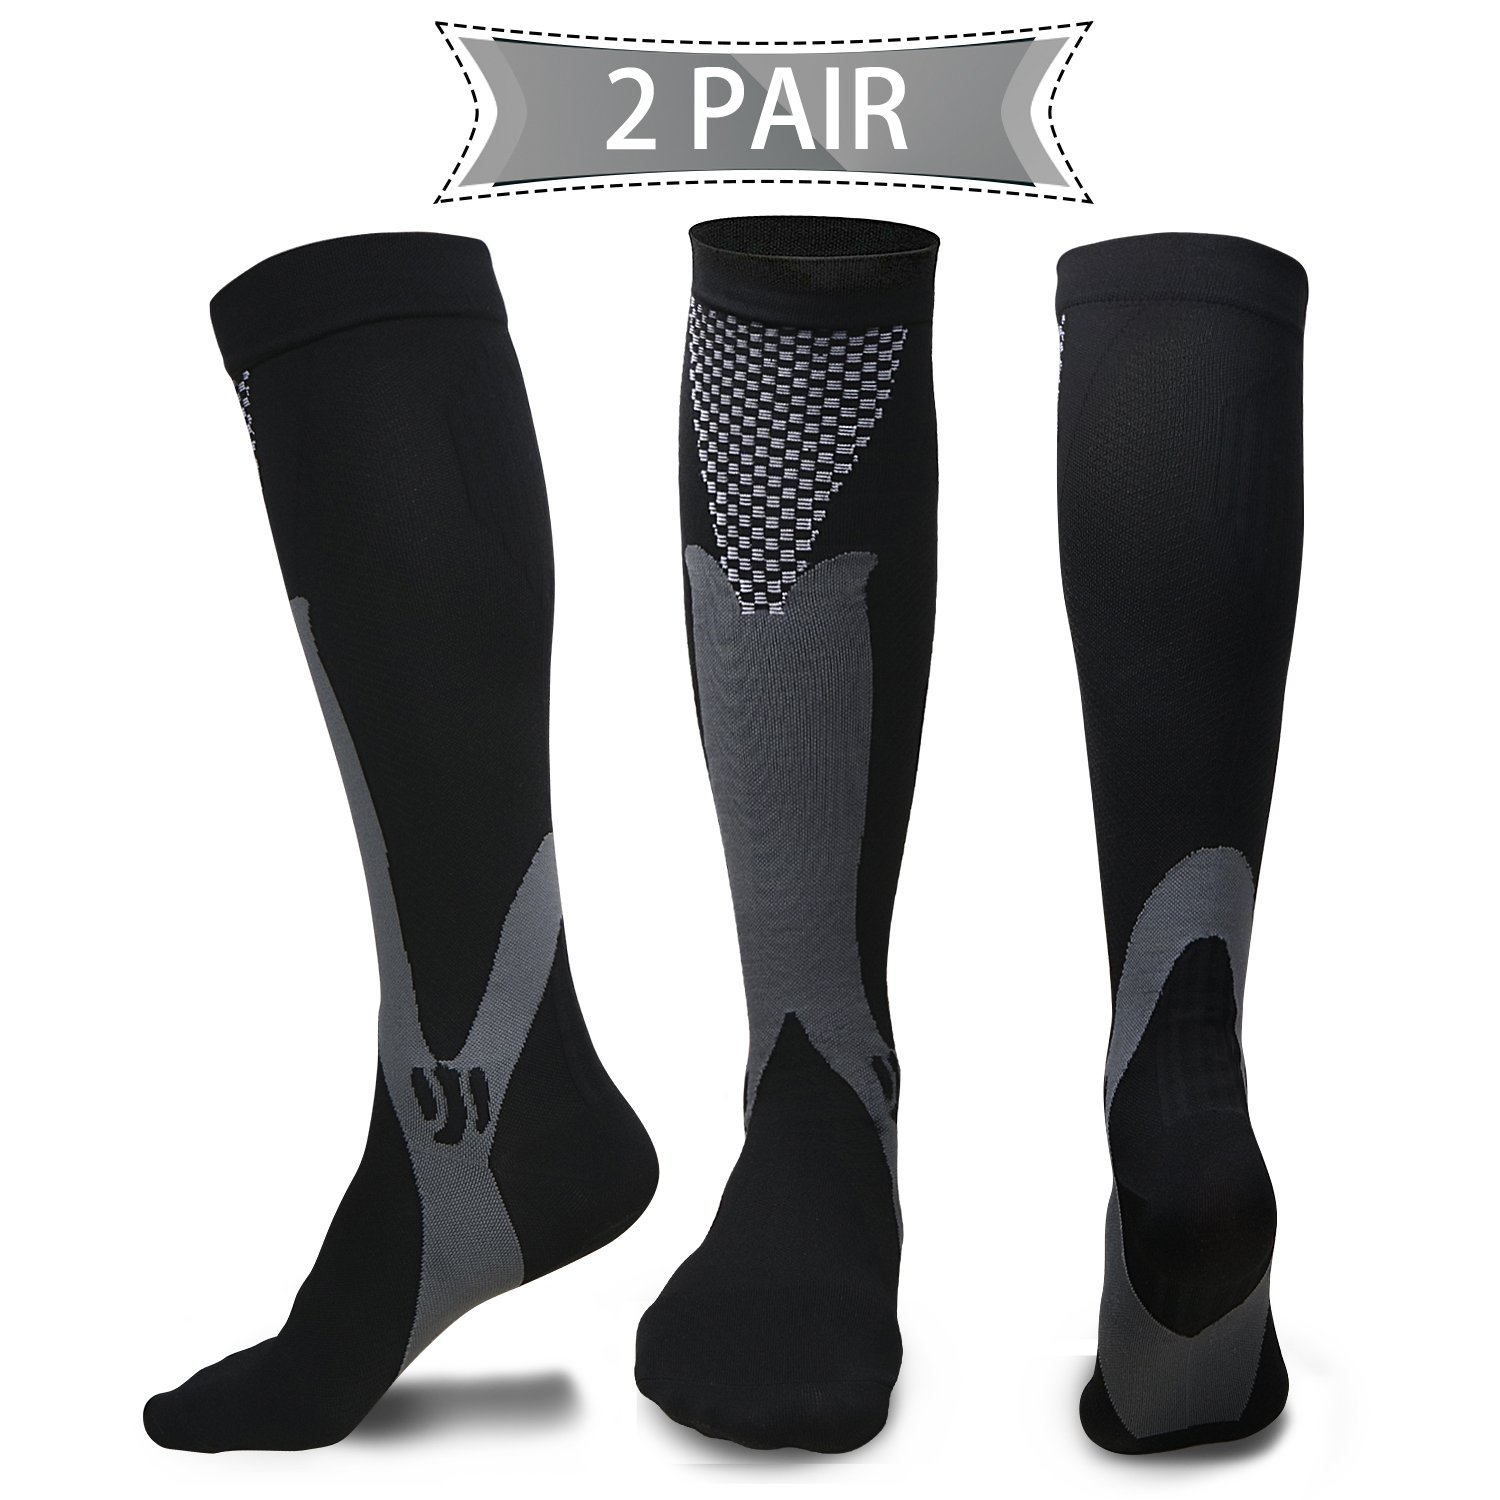 Compression Socks for Men & Women(2 Pairs), BEST Medical Grade Graduated Recovery Stockings for Nurses, Boost Stamina, Varicose, 20-30 Mmhg Fit for Running, Medical, Flight Travel (Black)